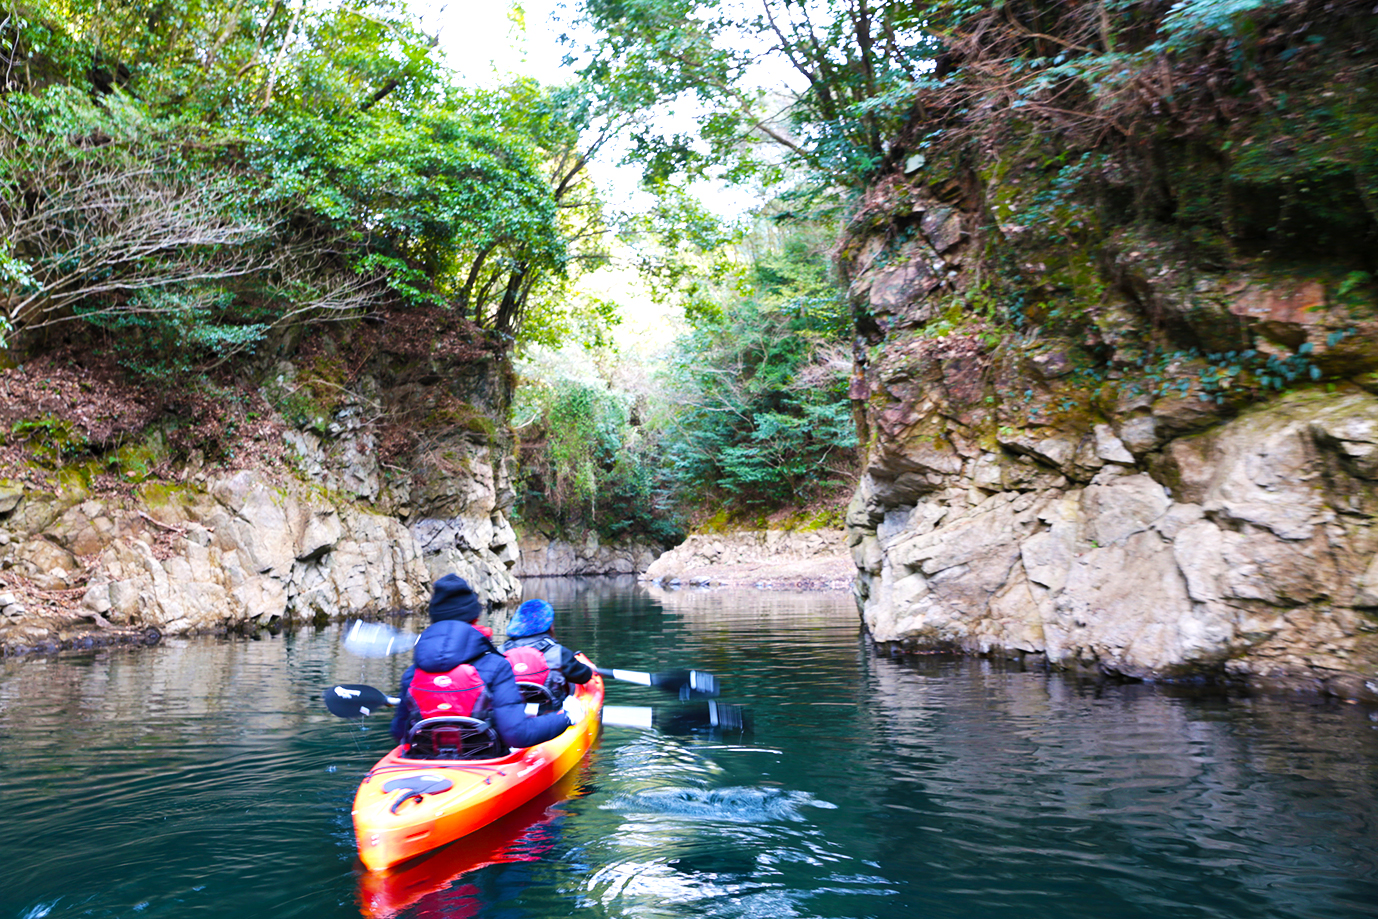 Kayaking in Kikuchi